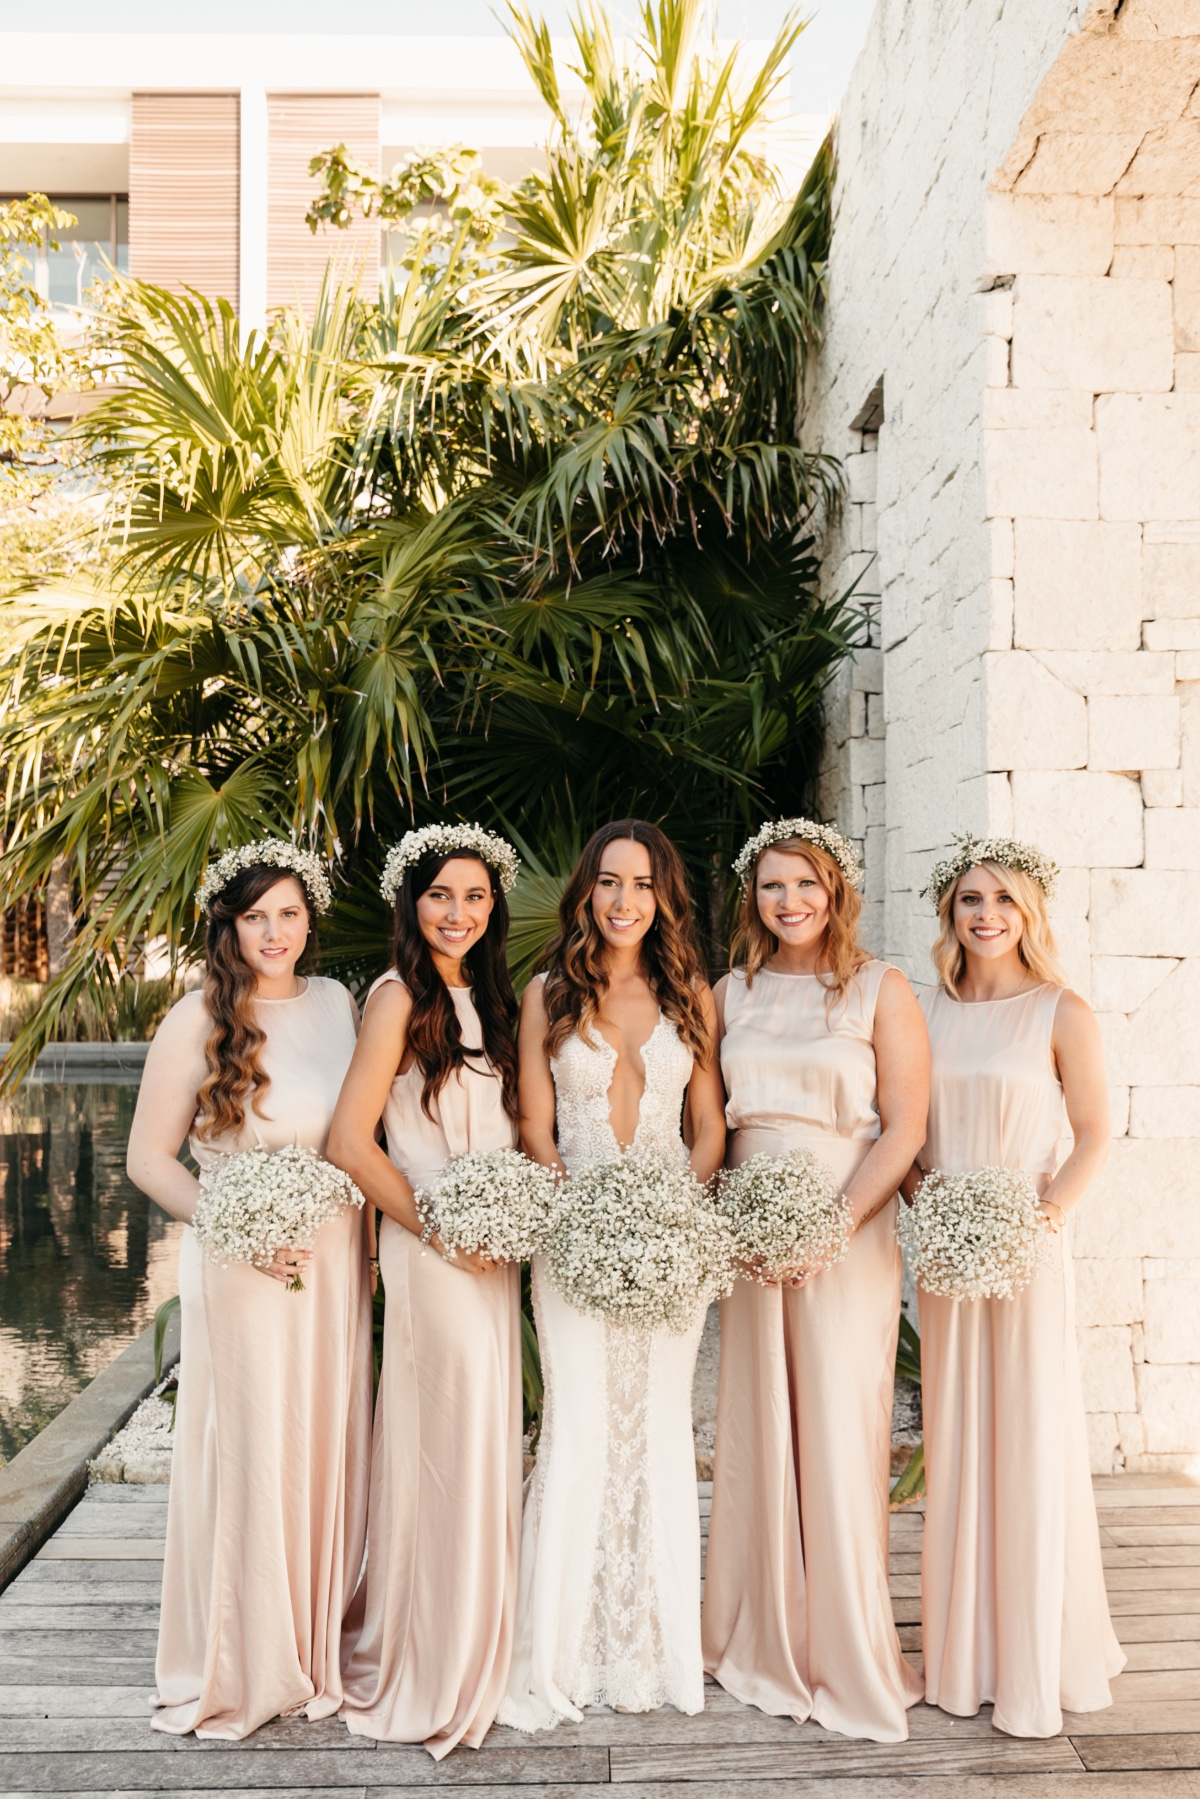 Floor-length Peach Bridesmaids Dresses